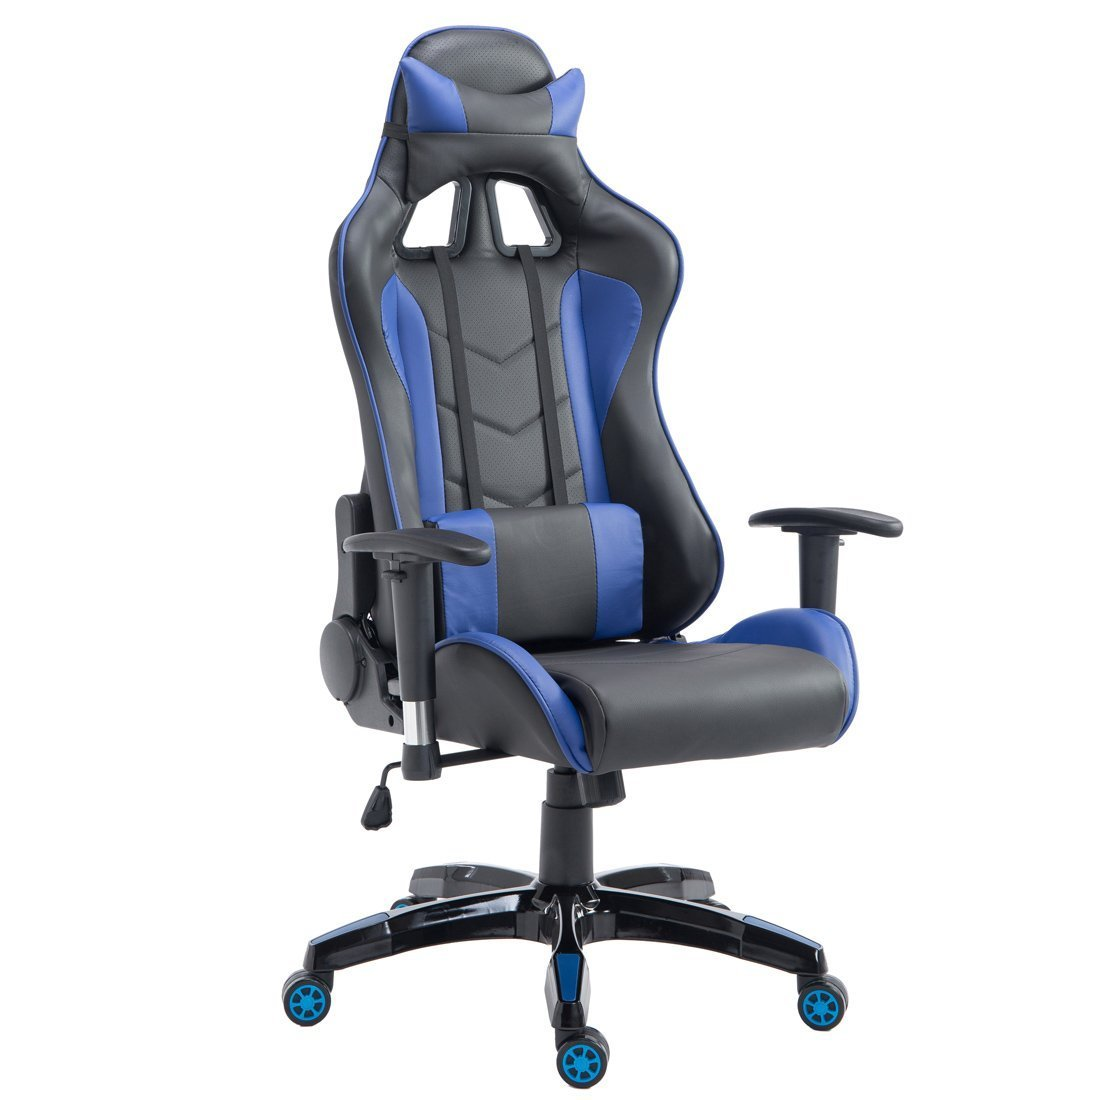 GOOD LIFE Ergonomic Office Chair Swivel Computer Gaming Chair Executive Business Seat (Blue)